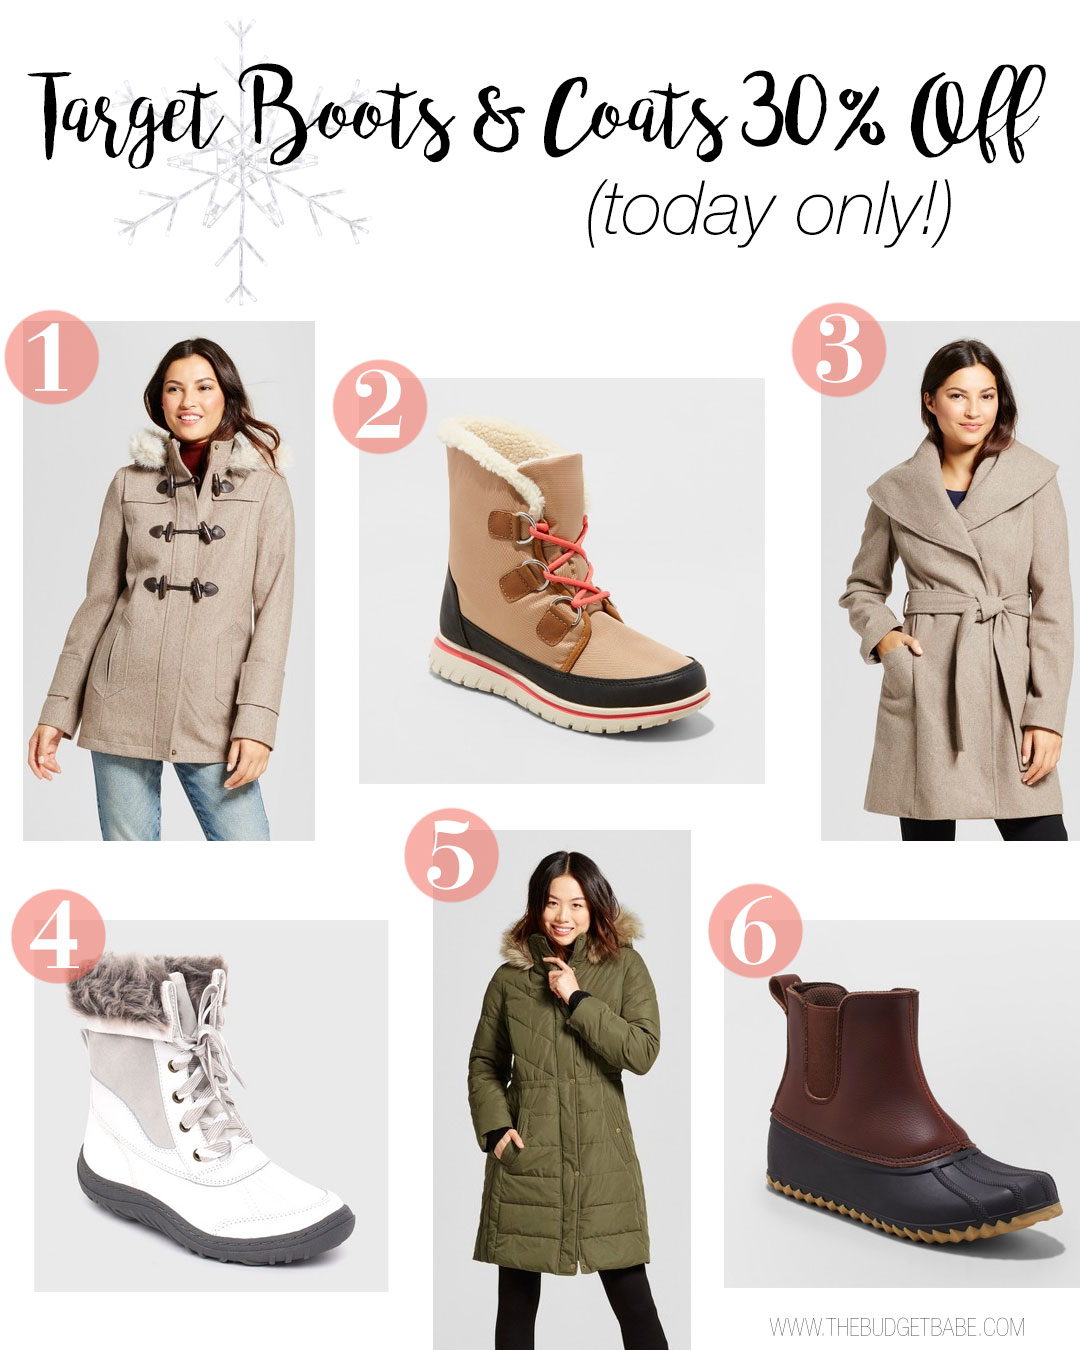 Target Boots and Coats are 30% off today only - for the whole family!